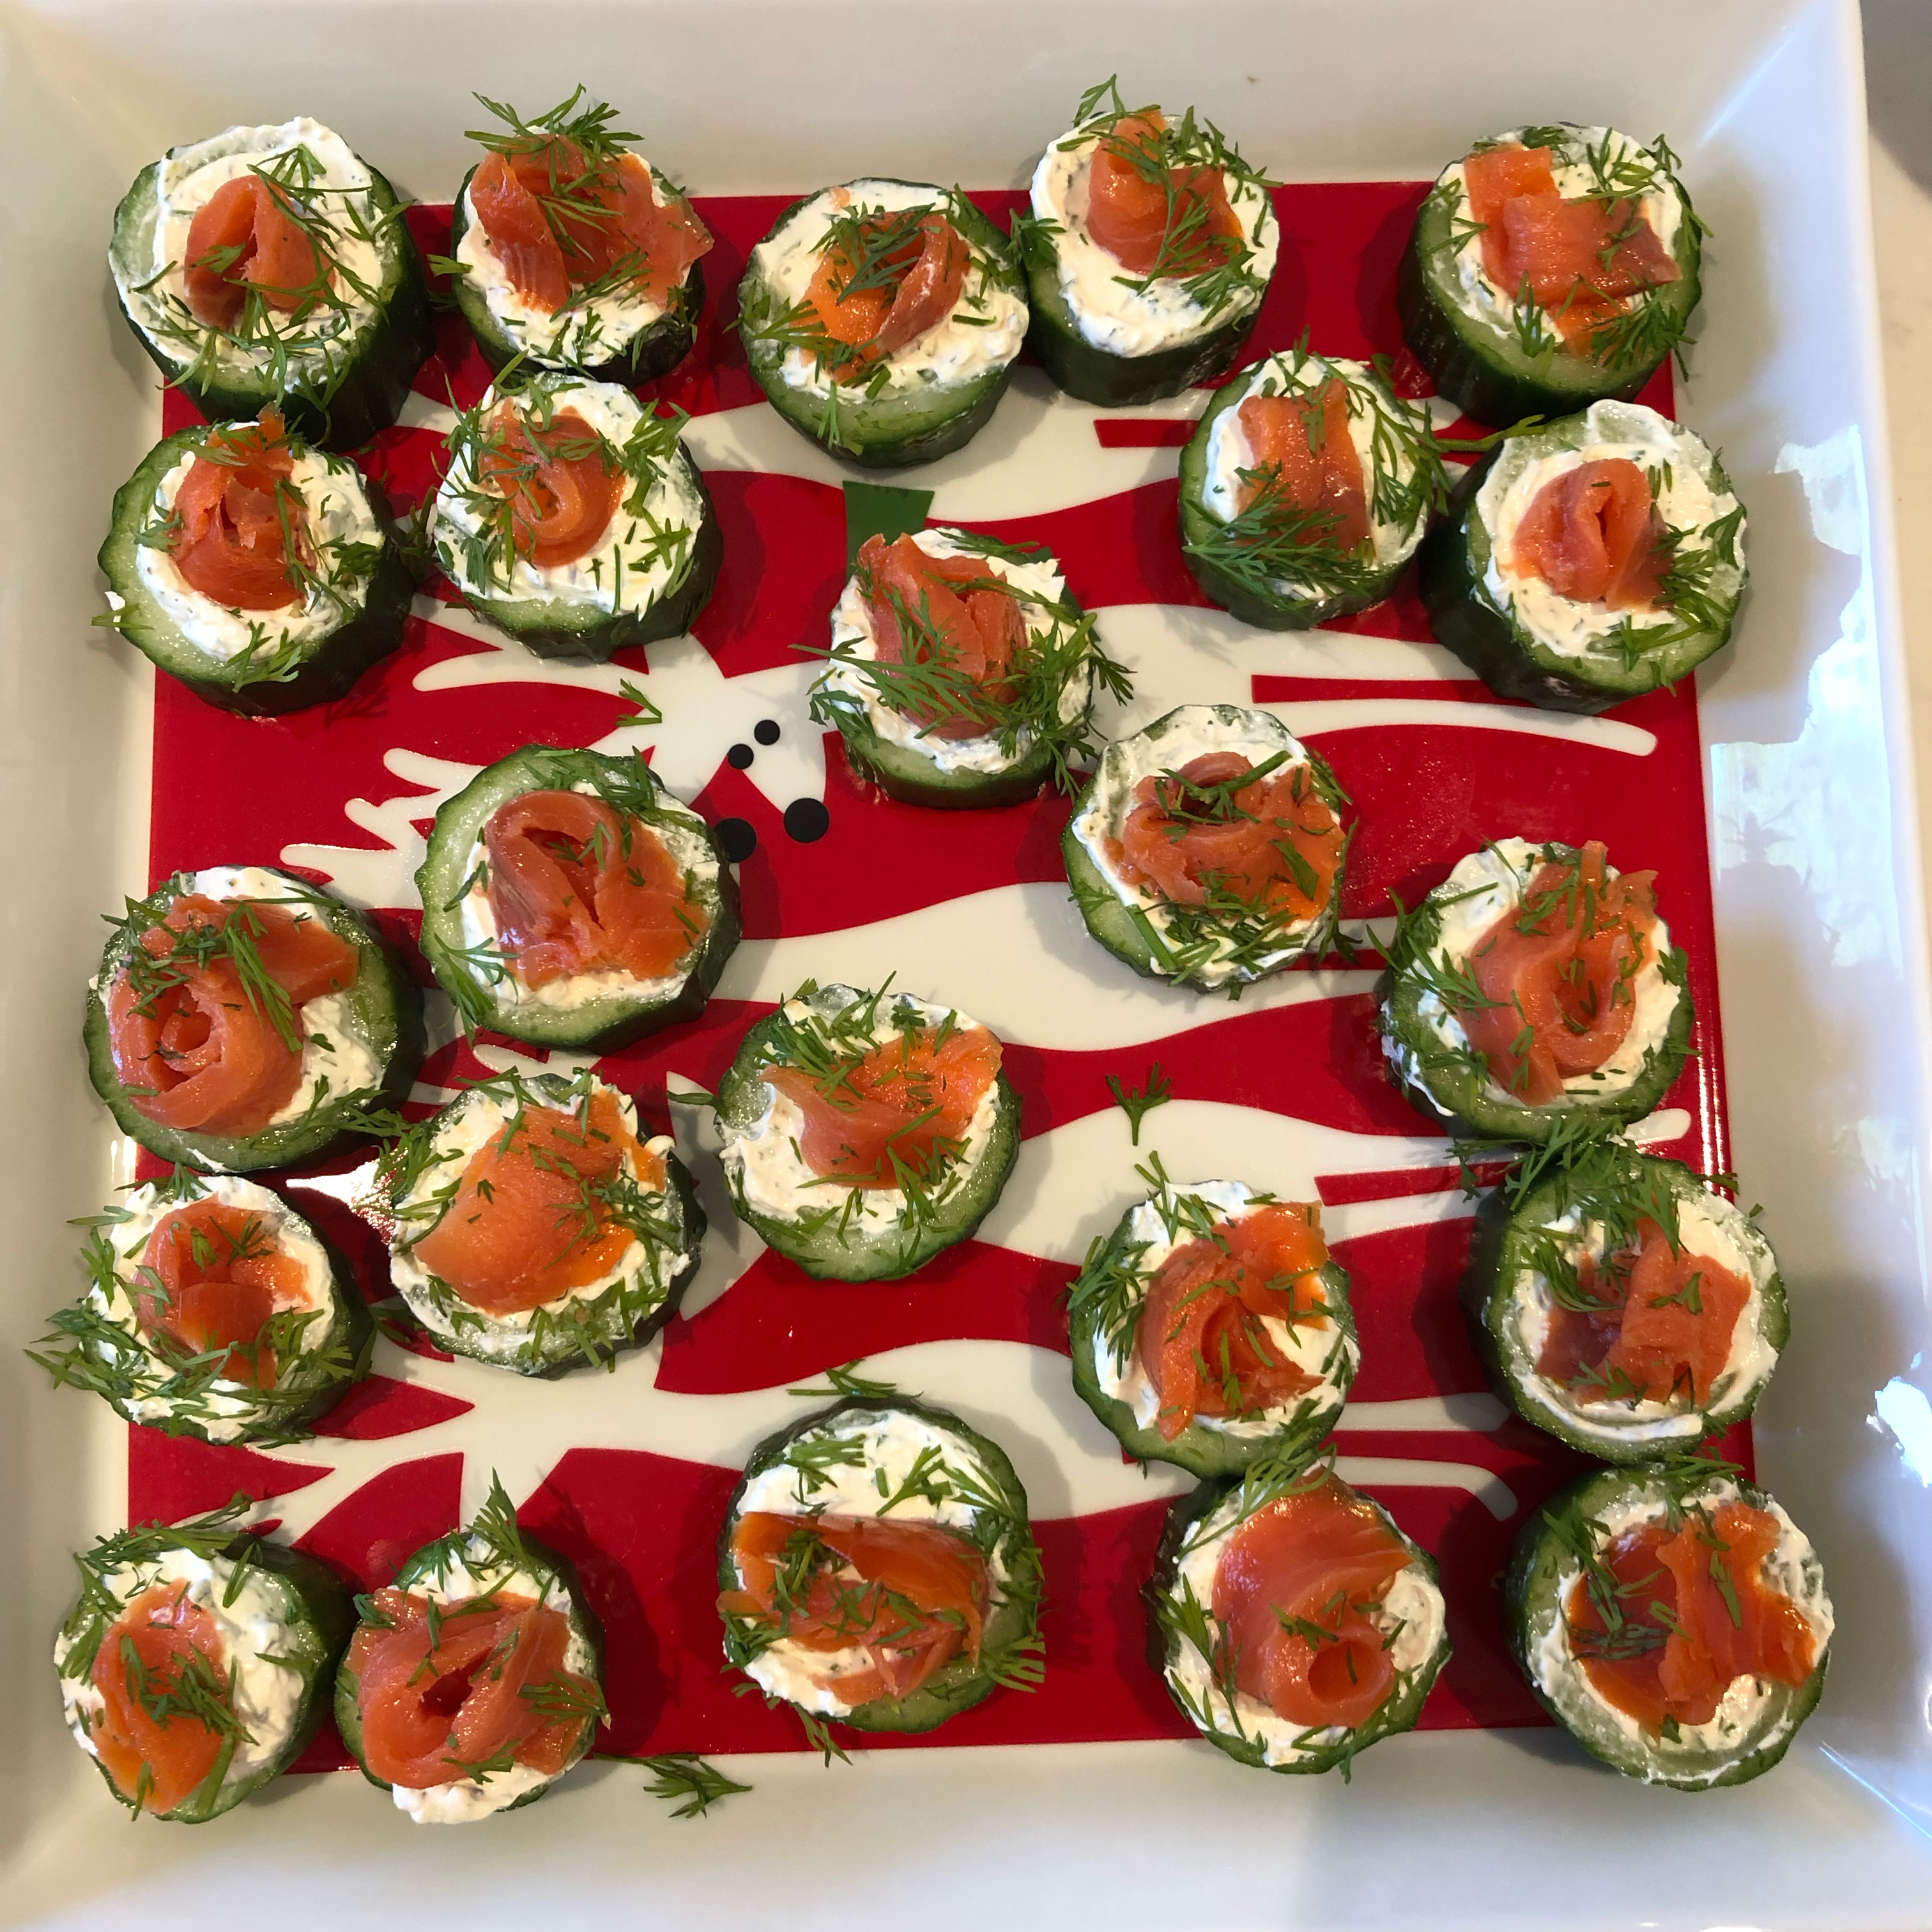 Cucumber Cups with Dill Cream and Smoked Salmon PCT